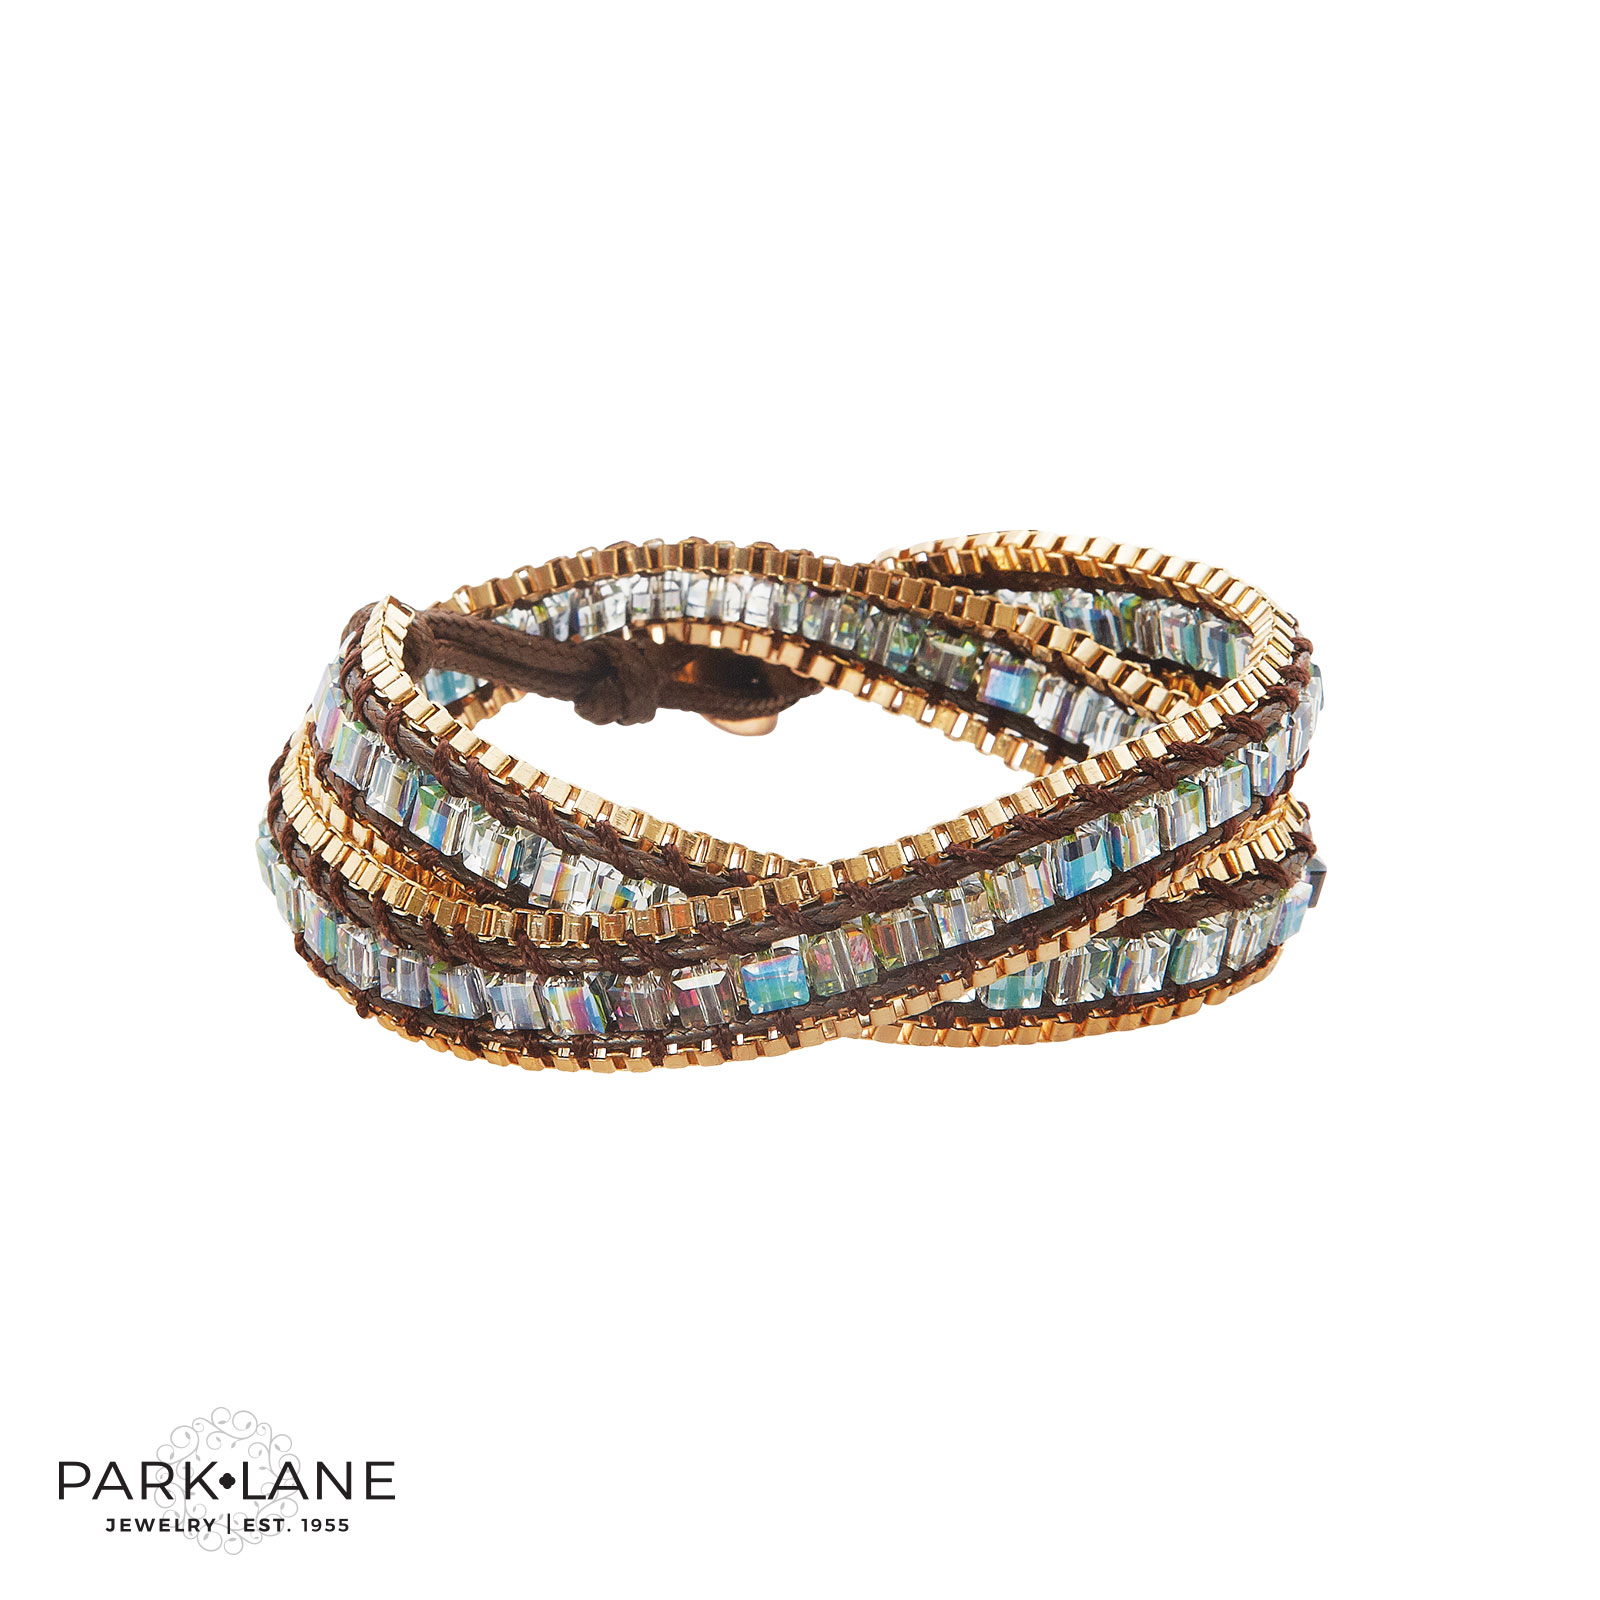 Park Lane is an excellent company with beautiful choices of necklaces, bracelets, earrings, chokers and many other elegant choices. The quality and designs of these items is first class and worthy of all the compliments one receives while wearing them/5().